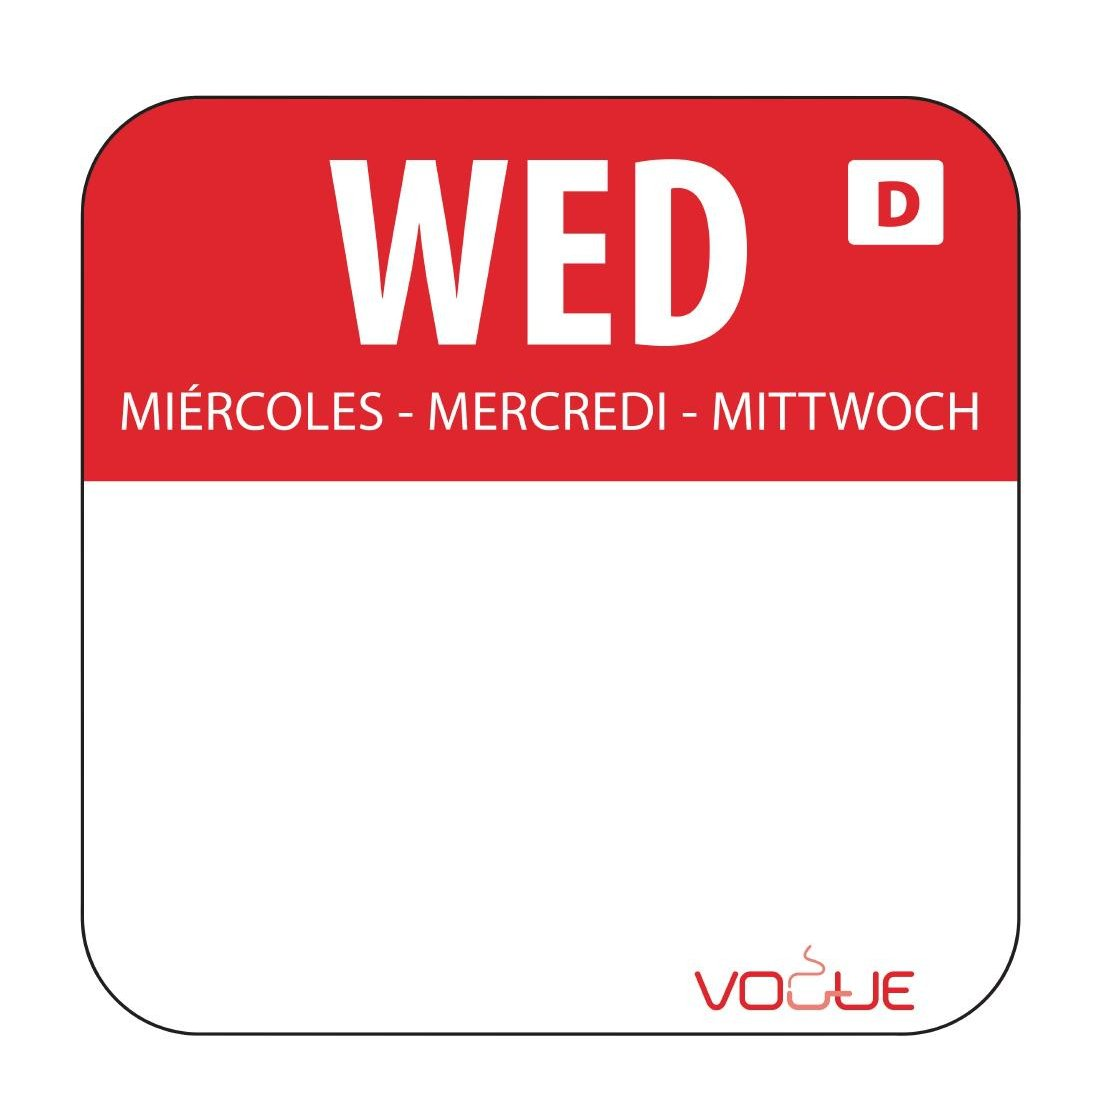 Wednesday Food Labels